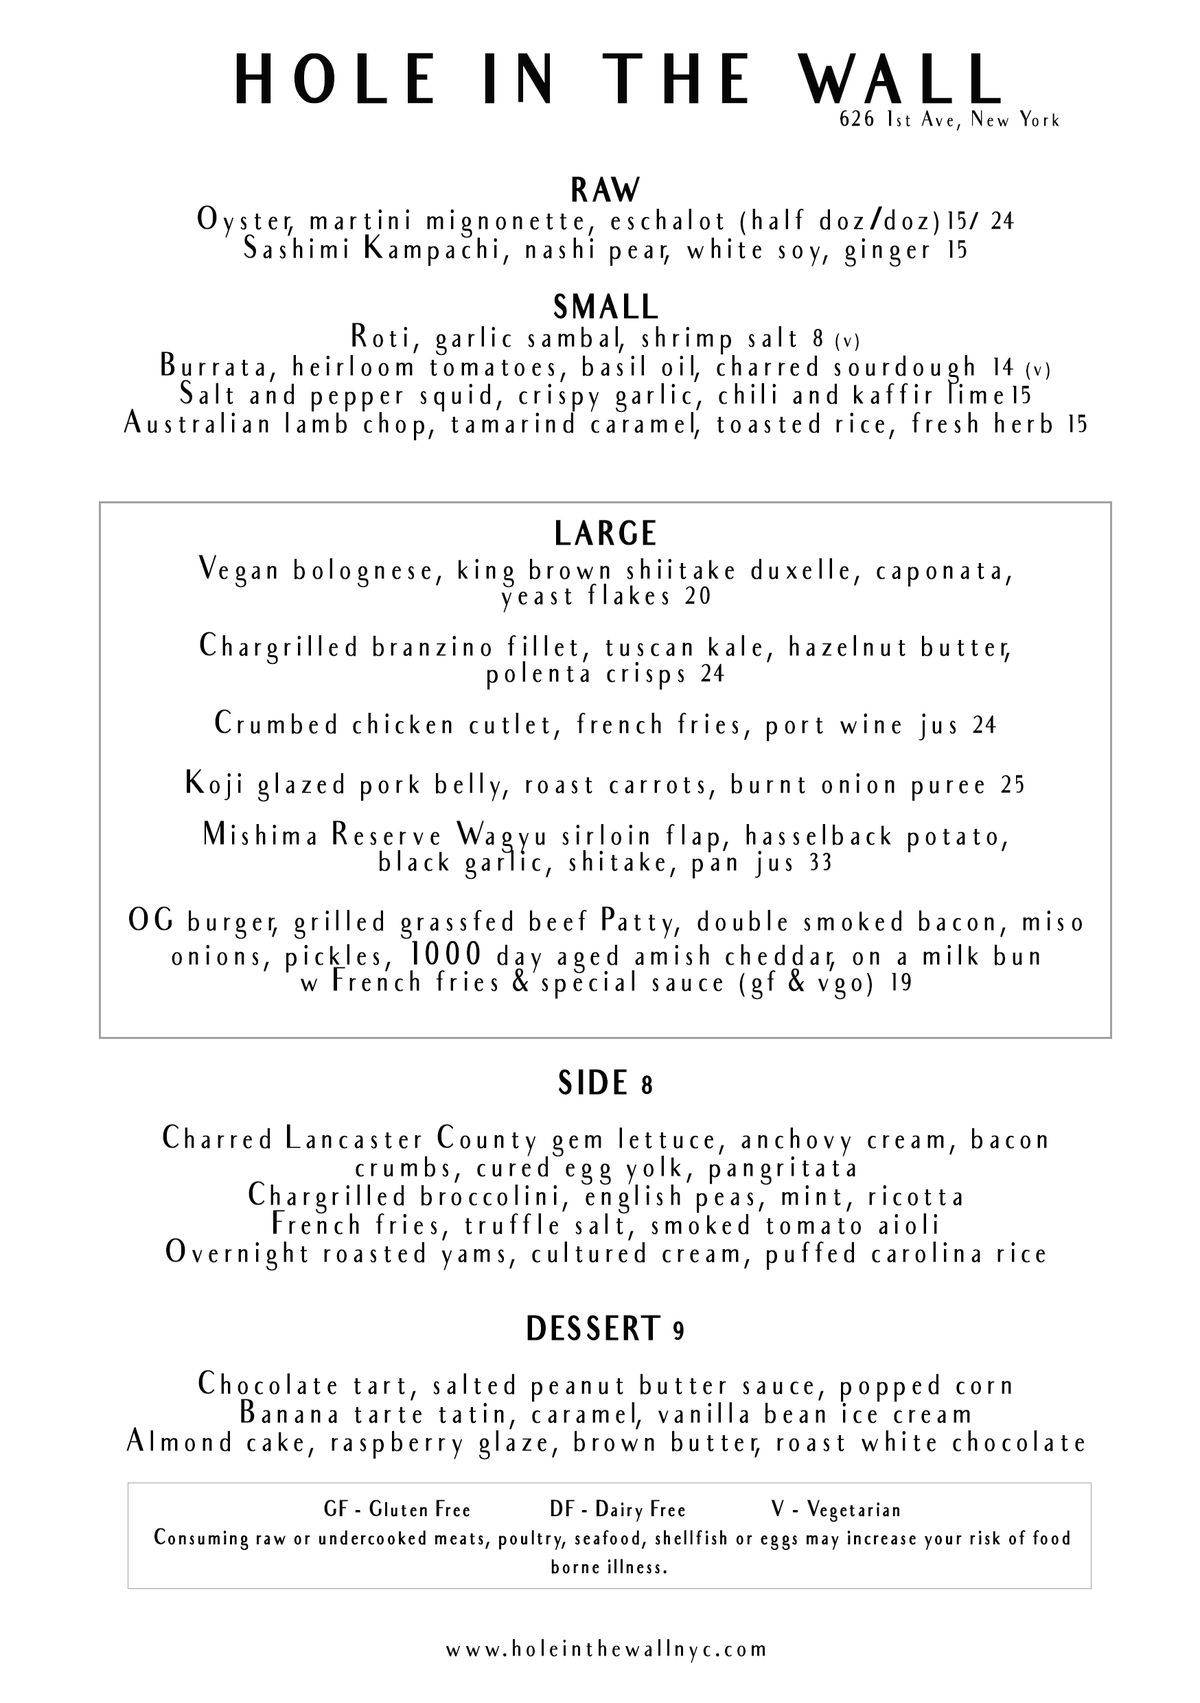 Hole in the Wall dinner menu